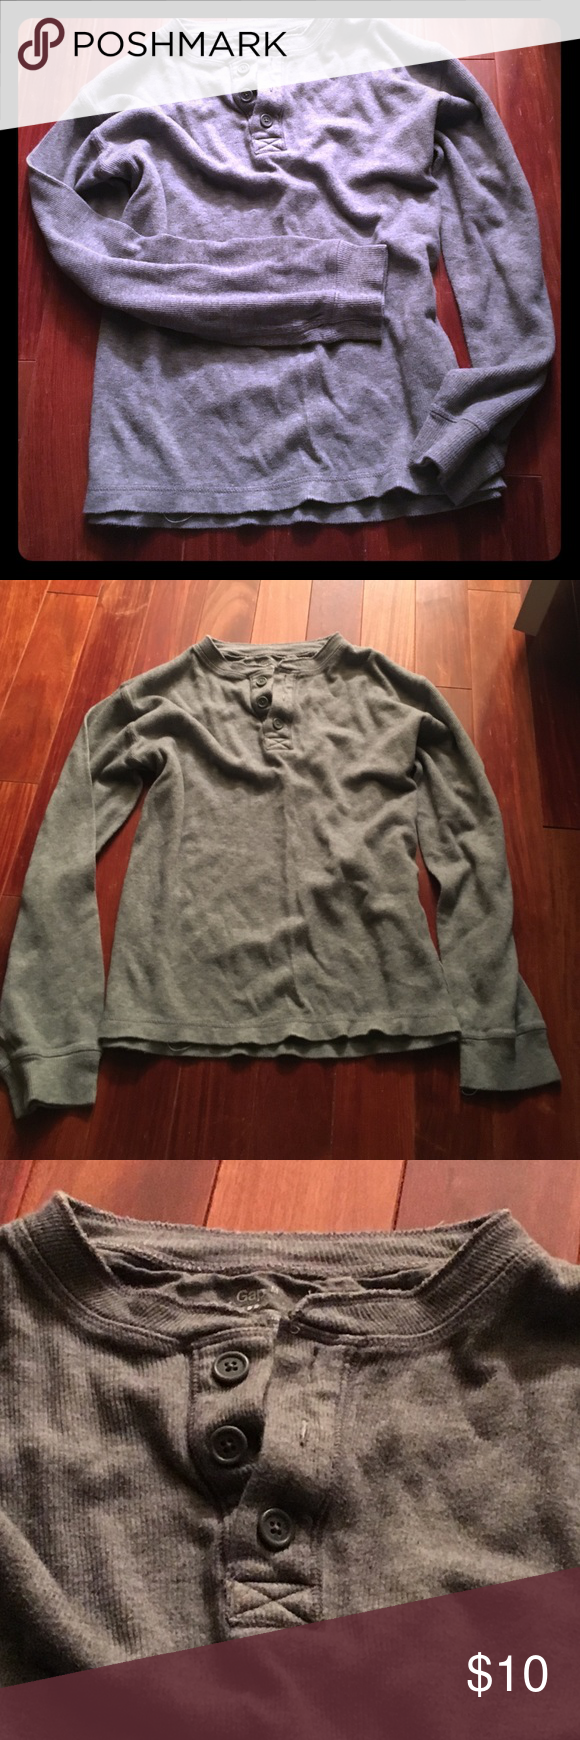 ELNC men's gray GAP LS SZ M 3 button thermal top Beautiful gray thermal from the gap -  men's SZ medium - worn just a couple times this is still is excellent condition.  Please ask any questions - thanks for looking in my closet!! GAP Shirts Tees - Long Sleeve